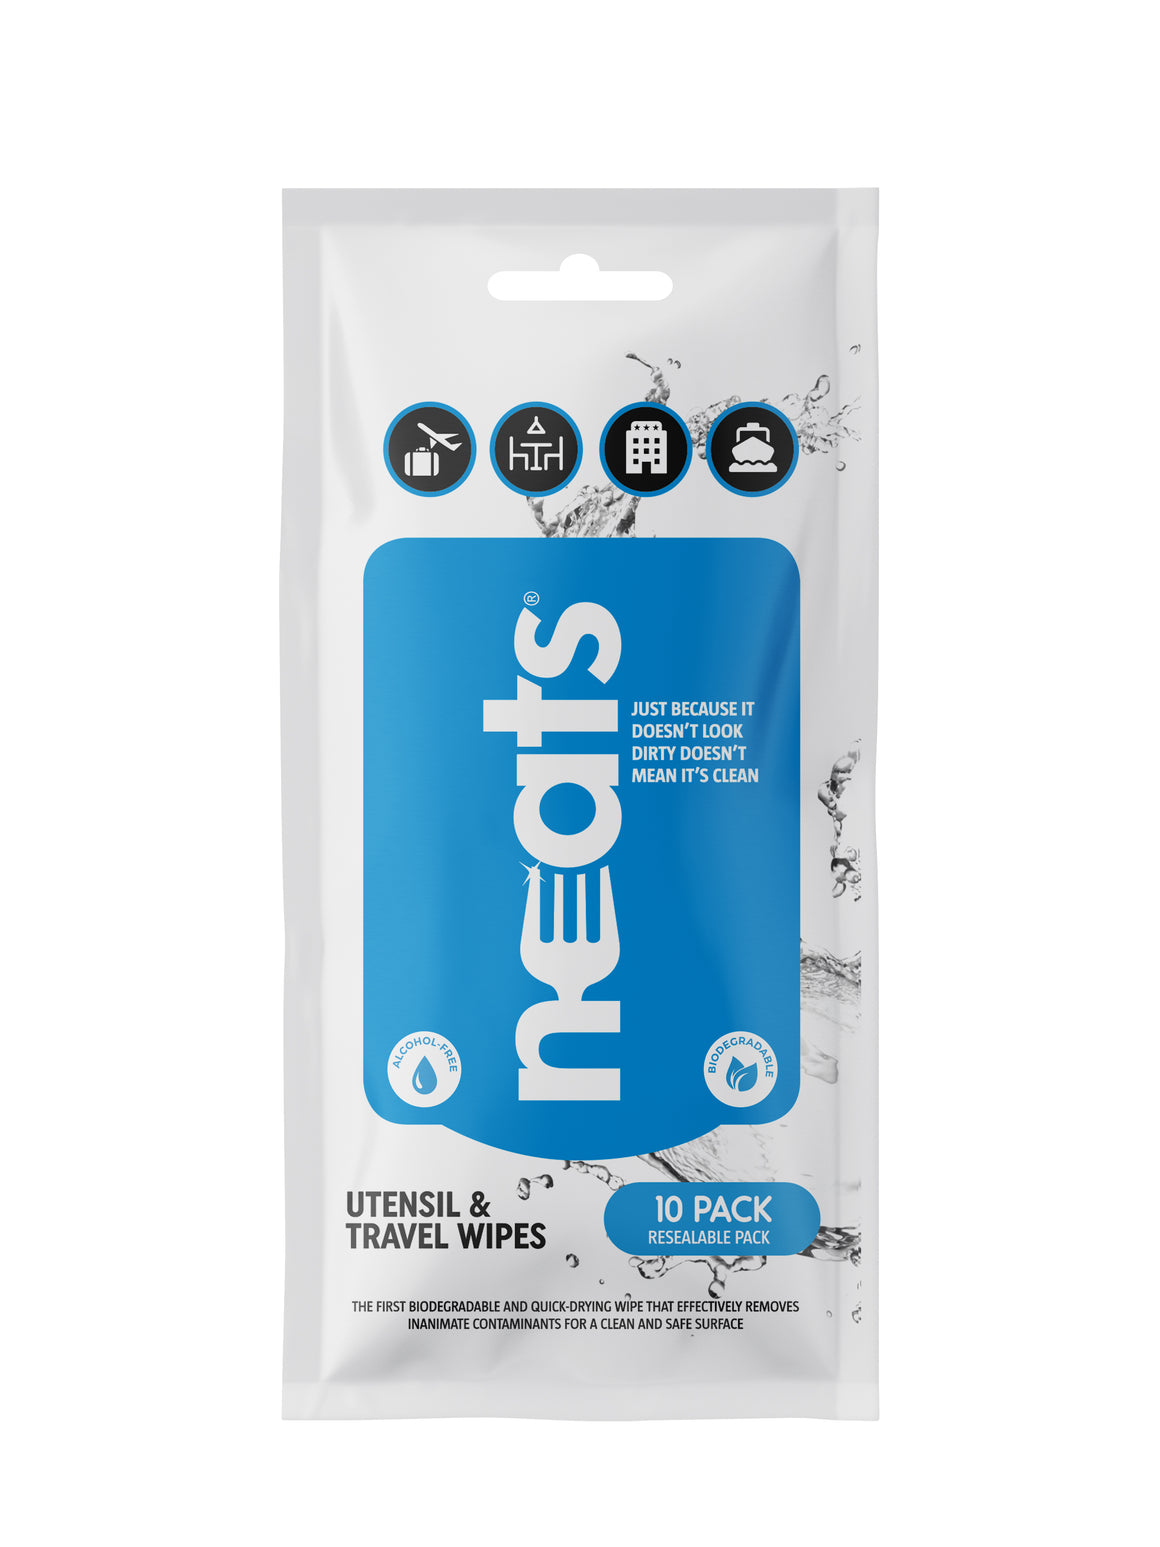 Neats Utensil & Travel Wipes: 10-Count Resealable Pack